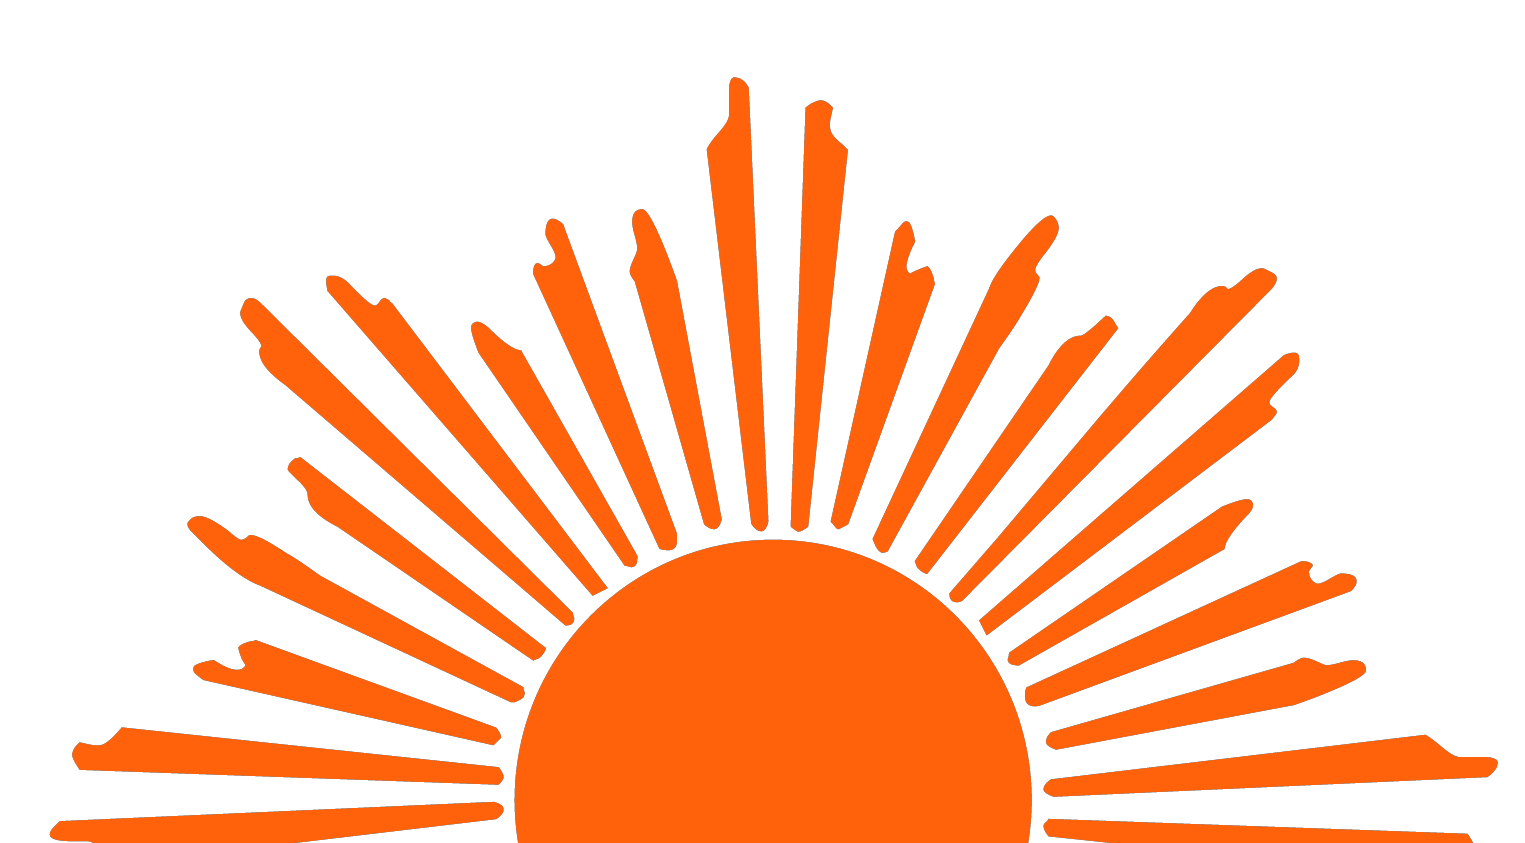 1525x843 Collection Of Free Vector Sun Graphic Design. Download On Ubisafe